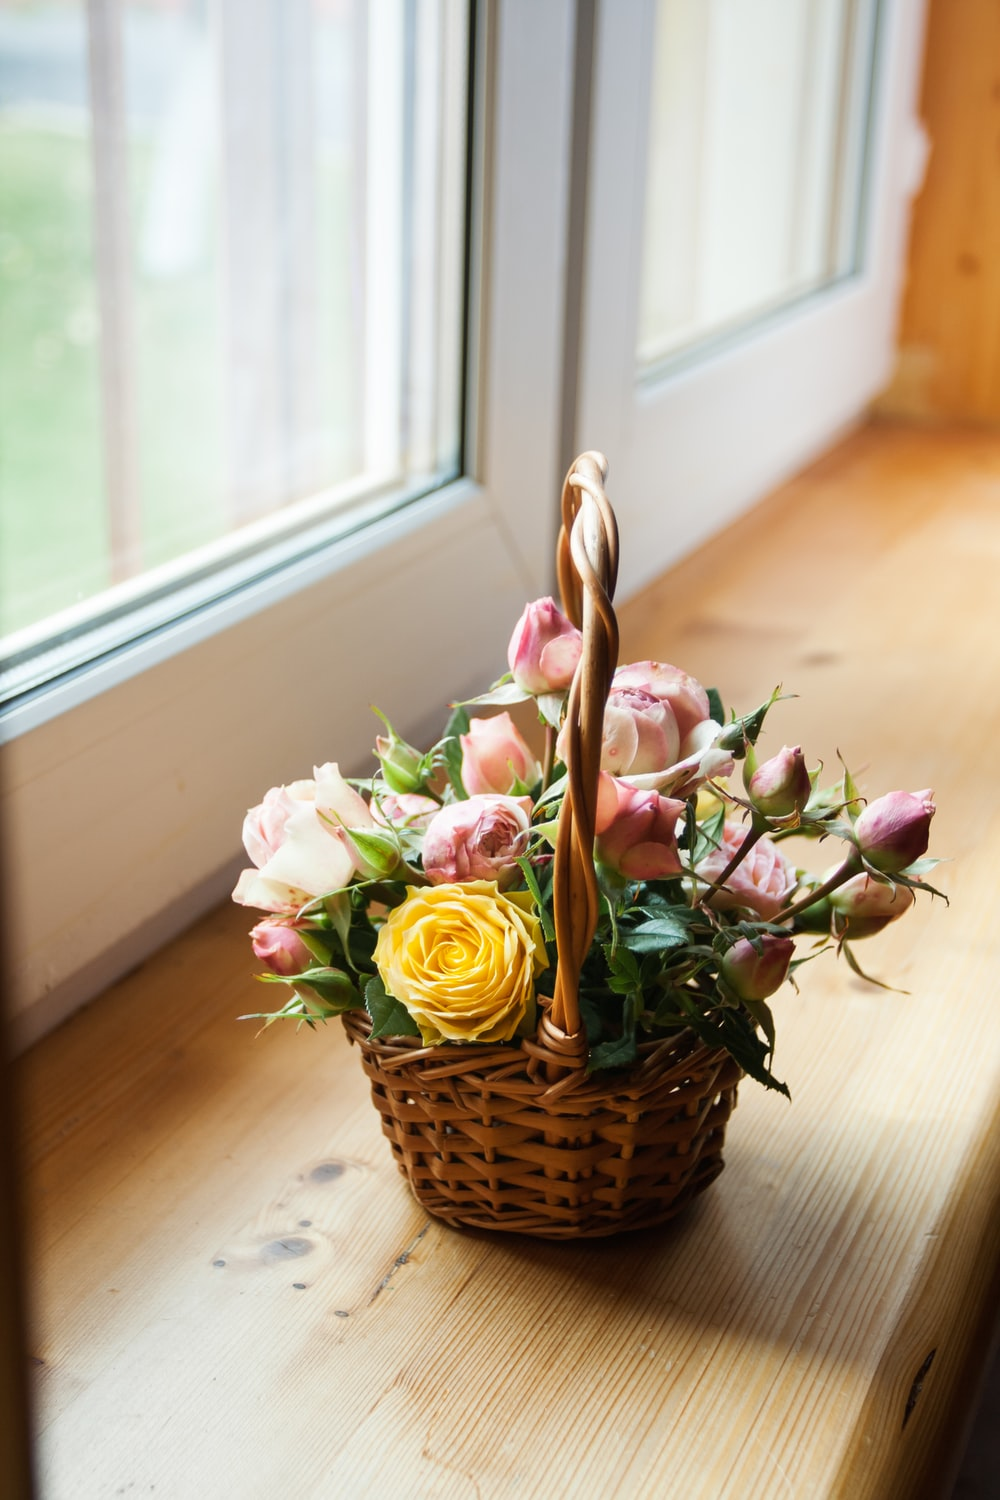 pink and white roses in brown woven basket